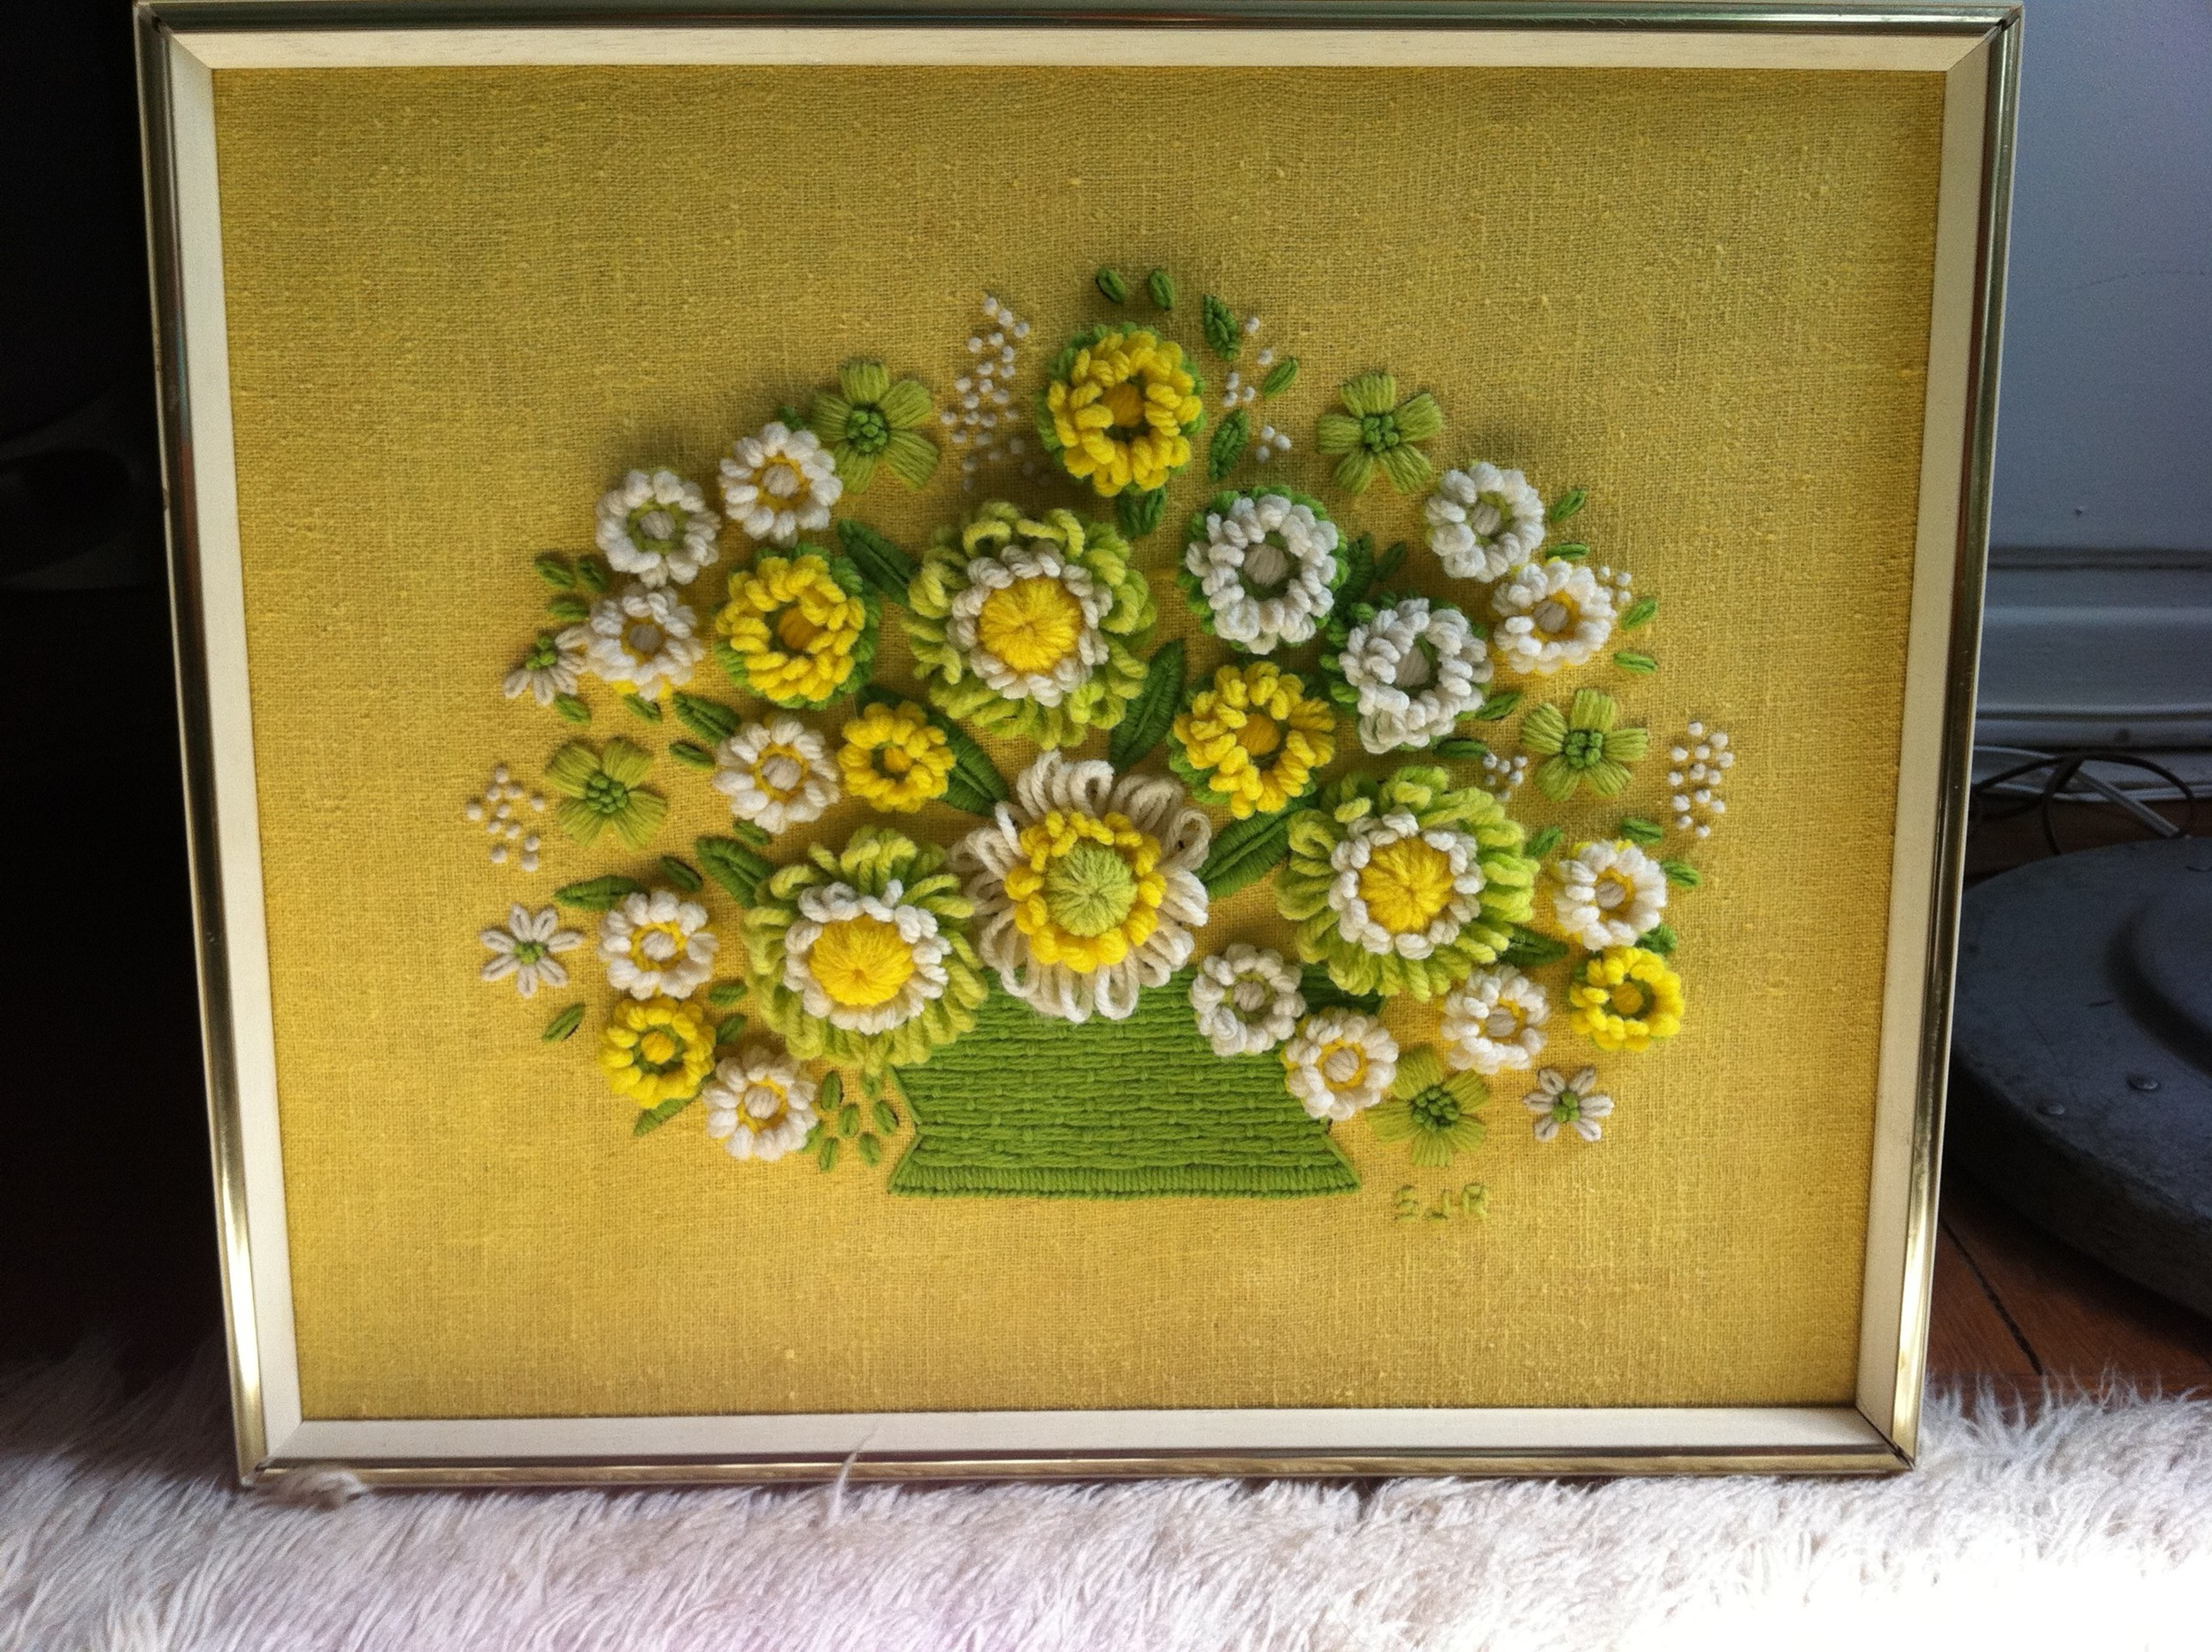 A wonderfully happy green and yellow yarn art bouquet atop a yellow linen background